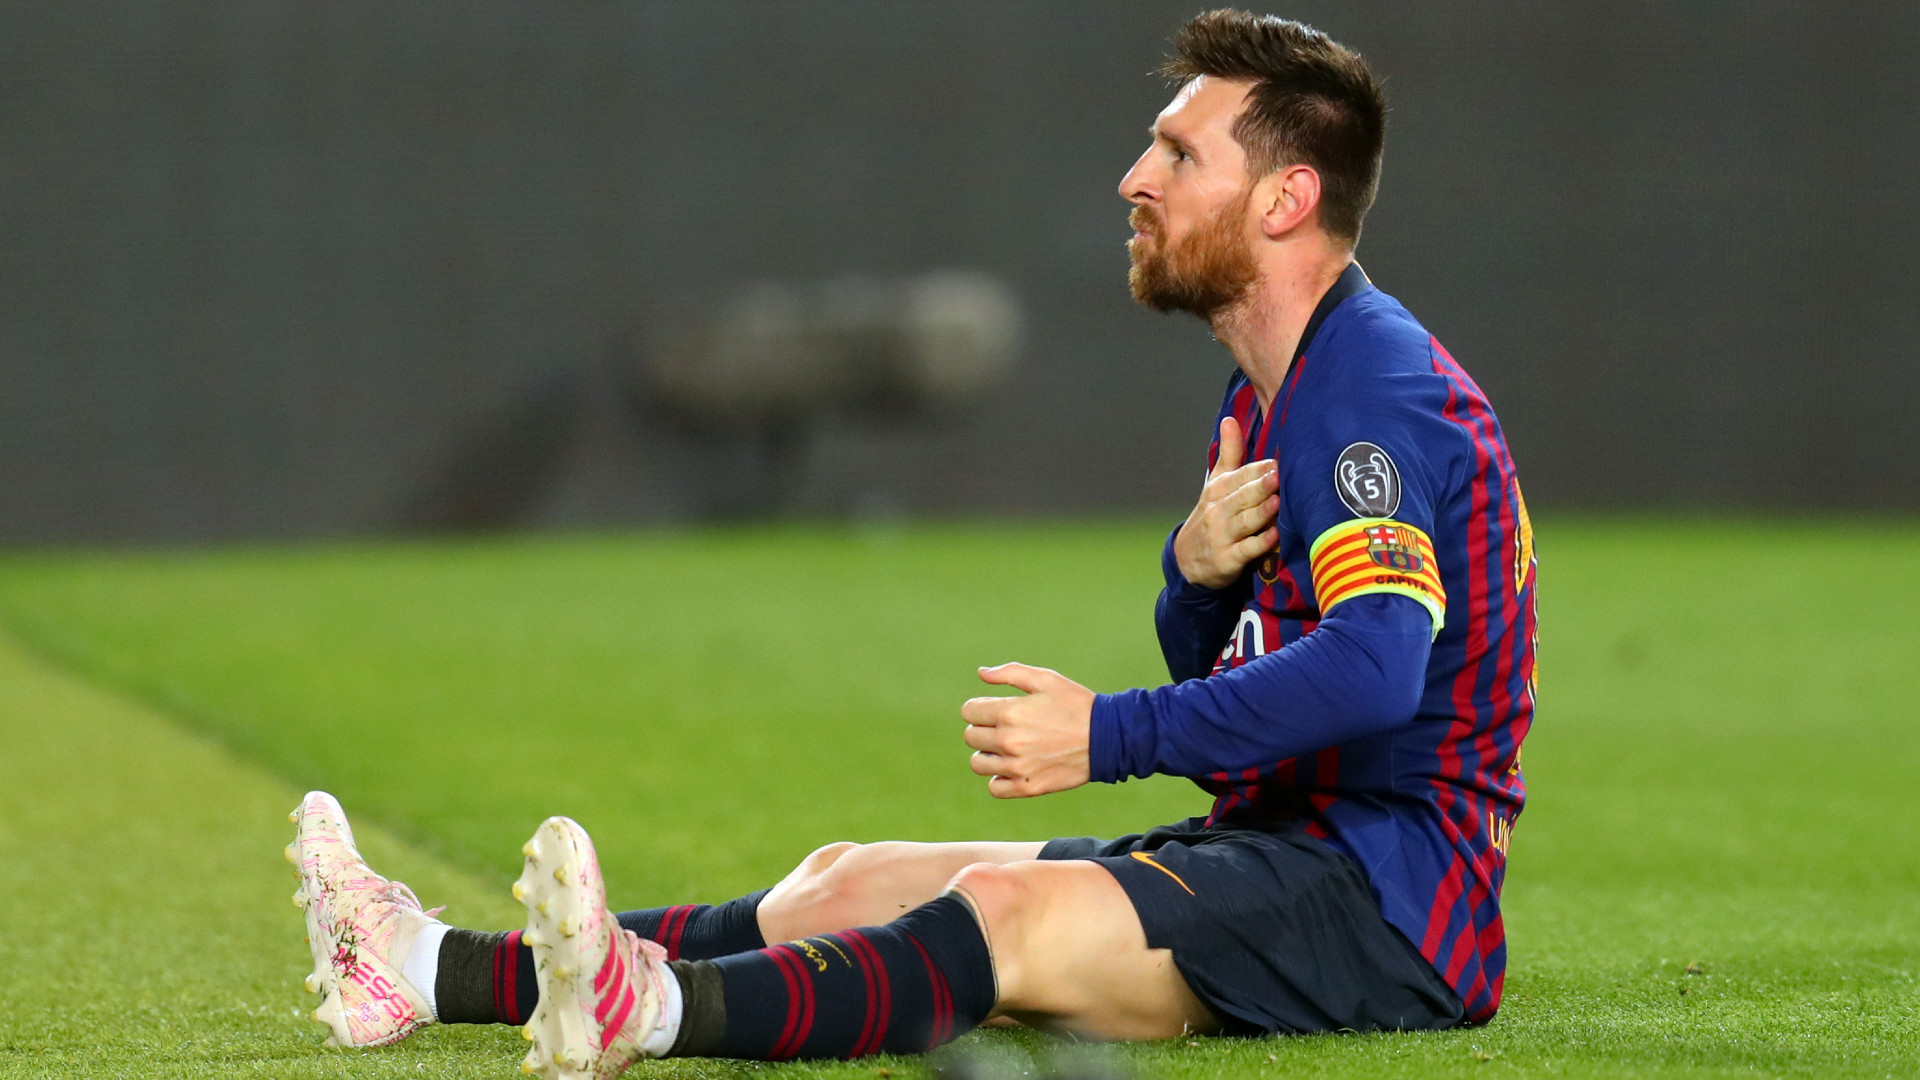 'Leo is Barca & Barca is Leo' - Essien hoping Messi makes U-turn about Camp Nou exit